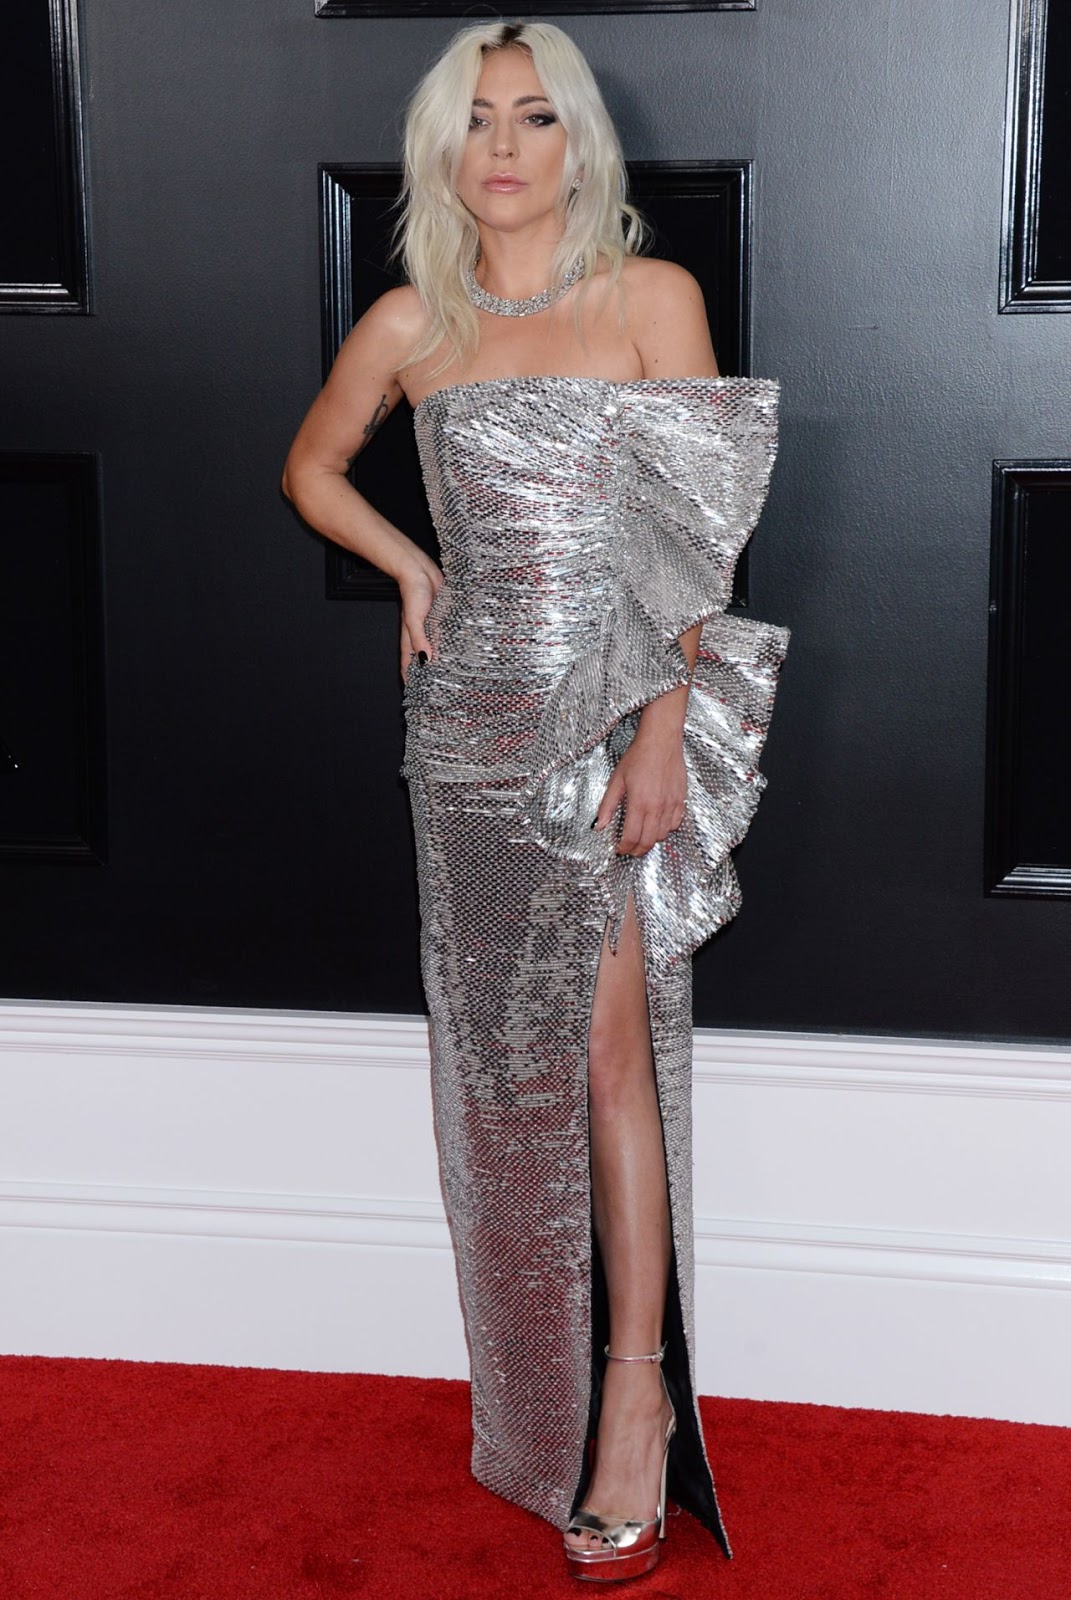 Lady Gaga is a vixen in metallic gown at the 2019 Grammys